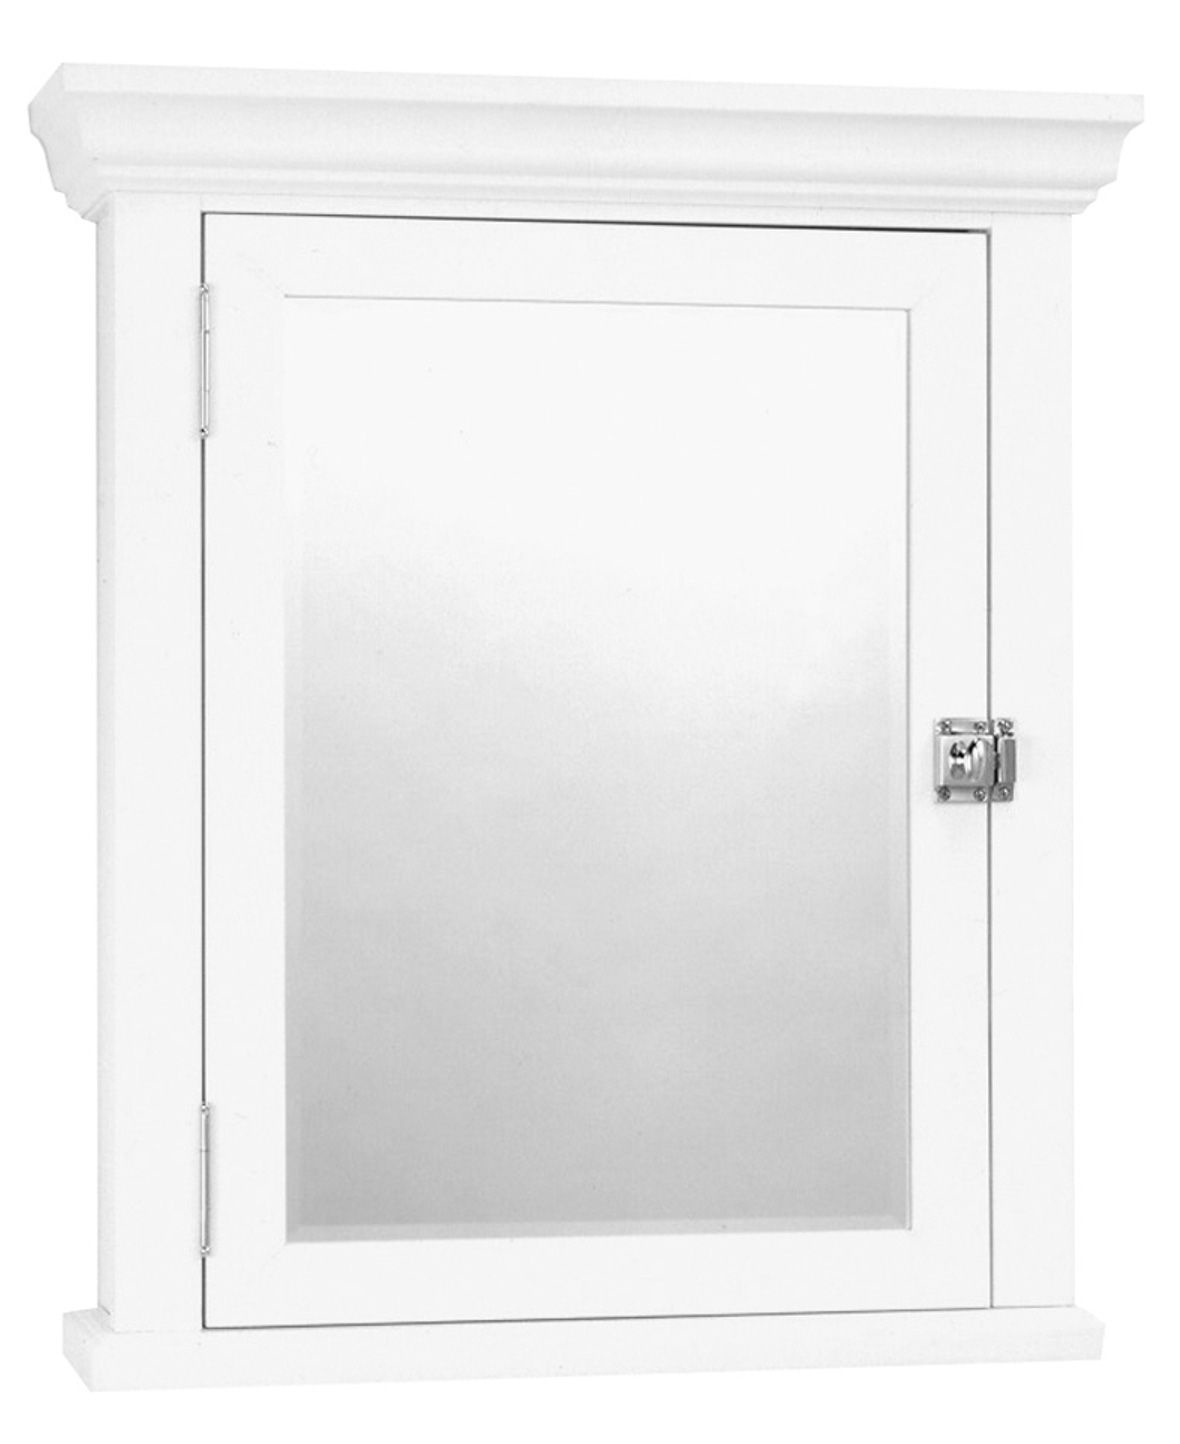 Zenith Bathroom Cabinets: Zenith Medicine White MC10WW Cabinet With Decorative Pediment